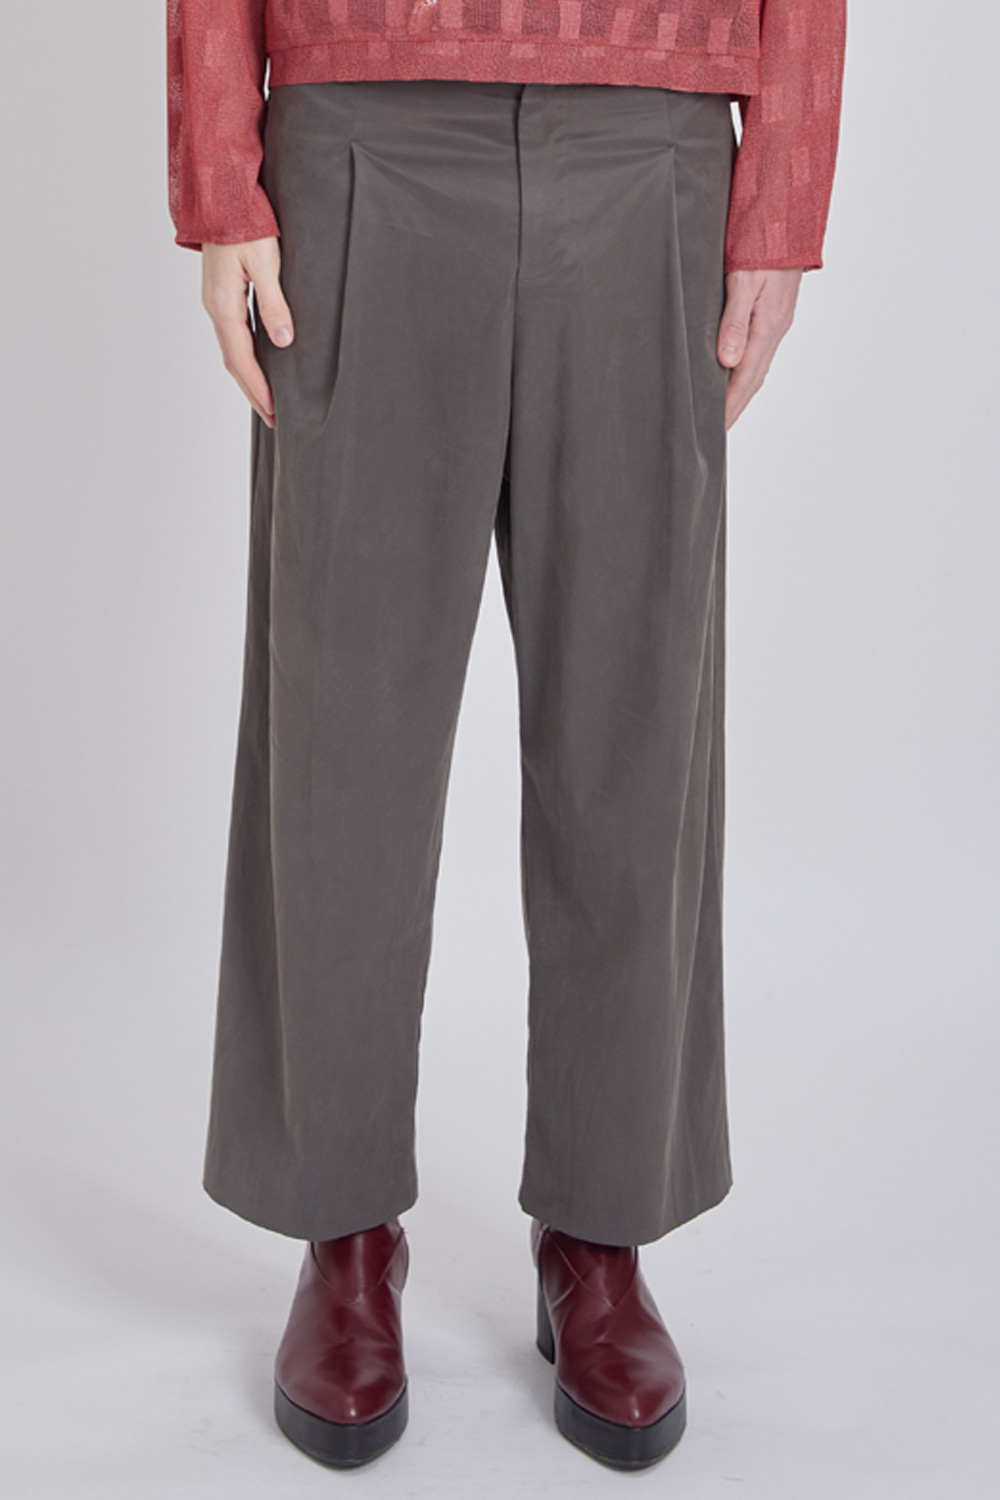 SIDE POCKET WIDE PANTS (KHAKI GREY)